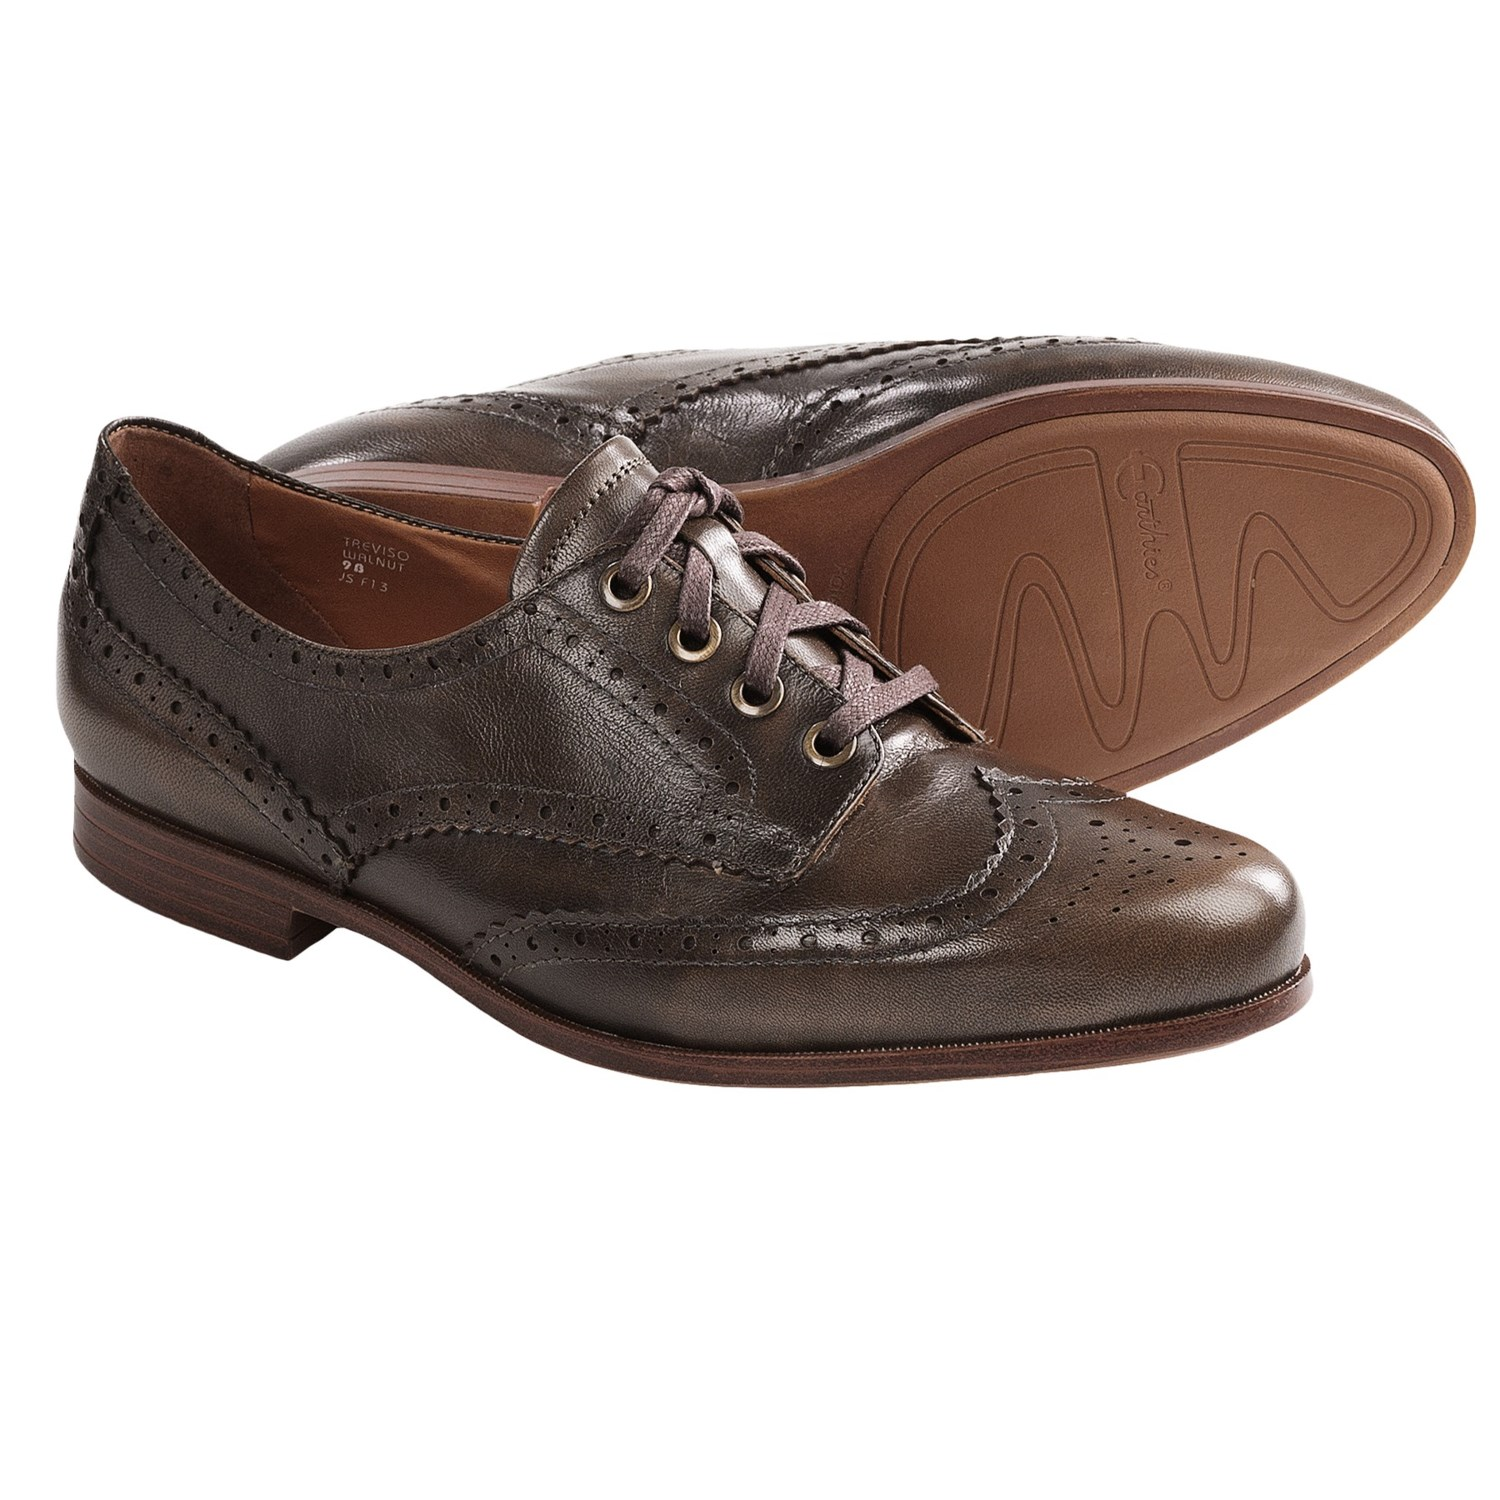 Earthies Treviso Wingtip Shoes - Oxfords (For Women) in Walnut Leather